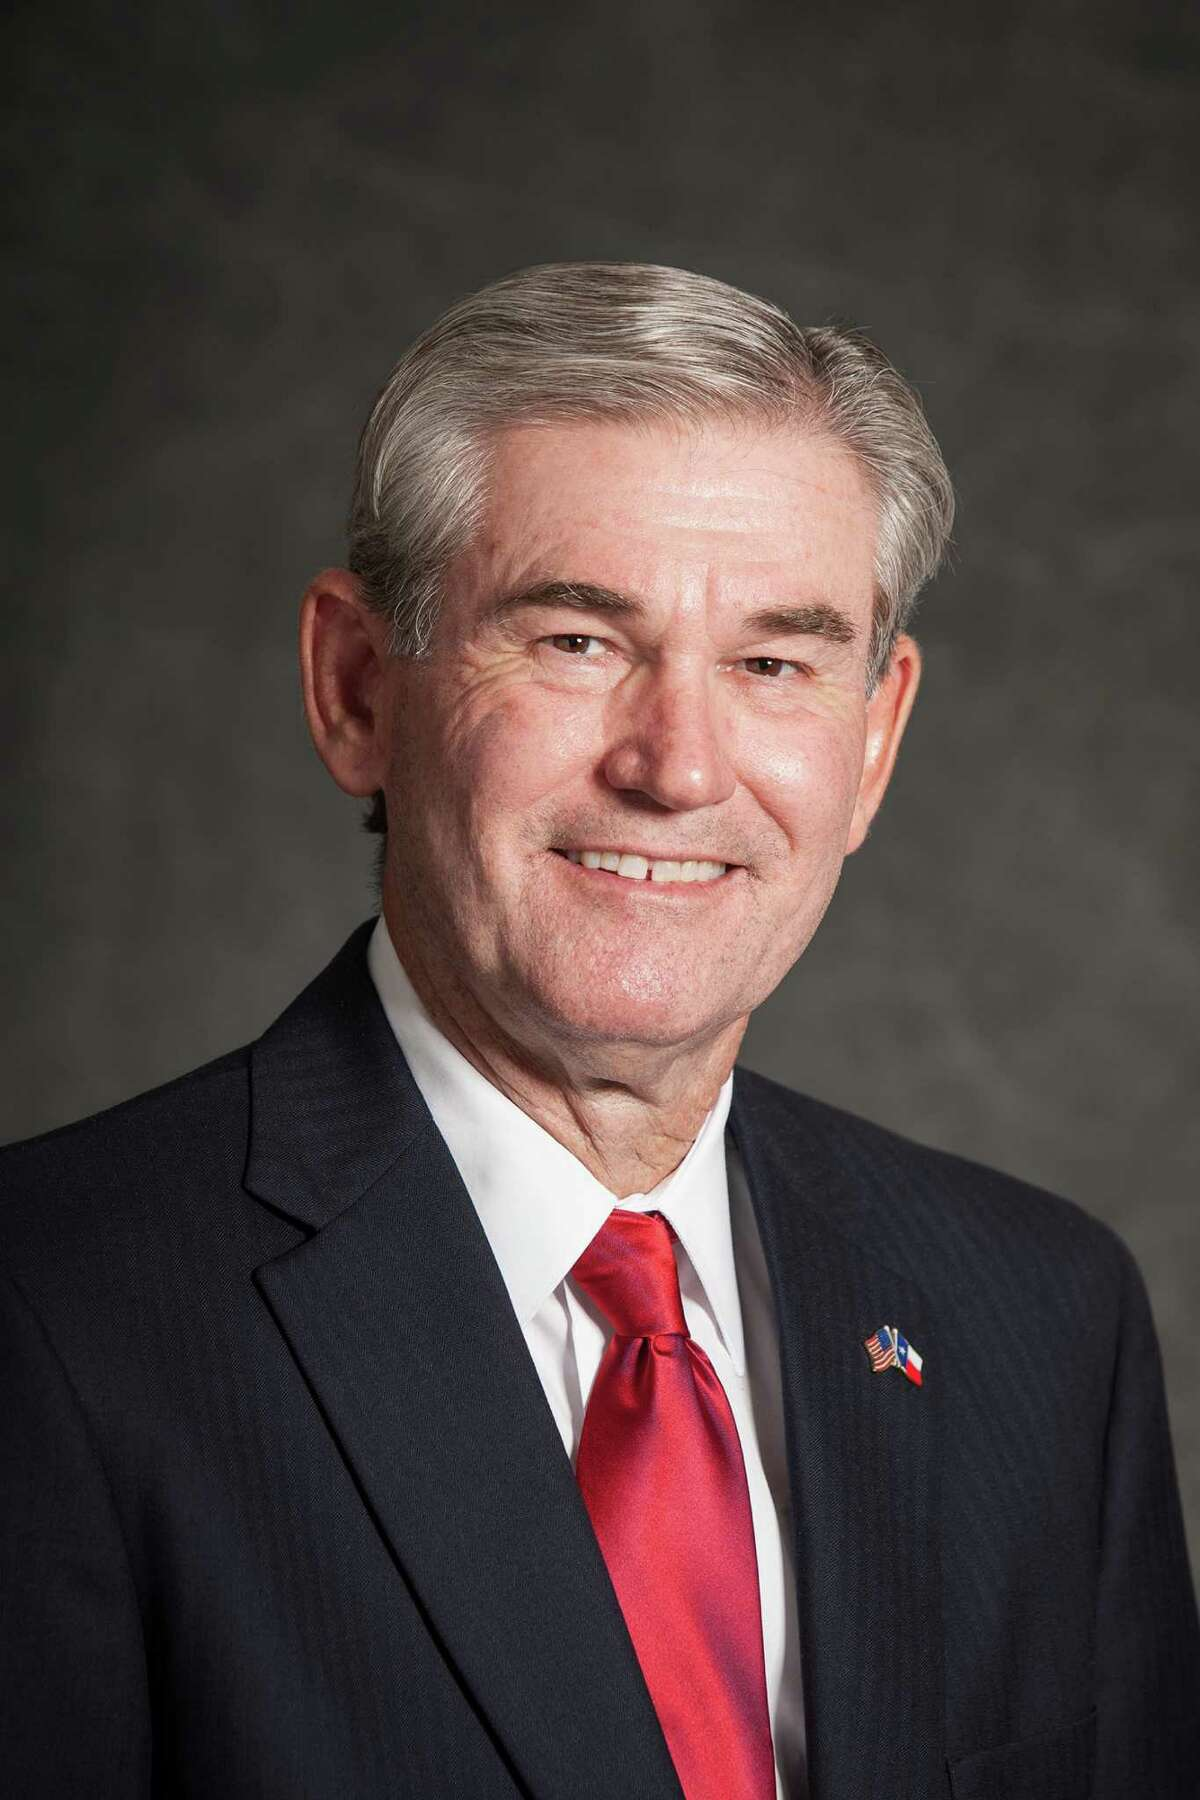 State Rep. Ed Thompson will serve as a keynote speaker.